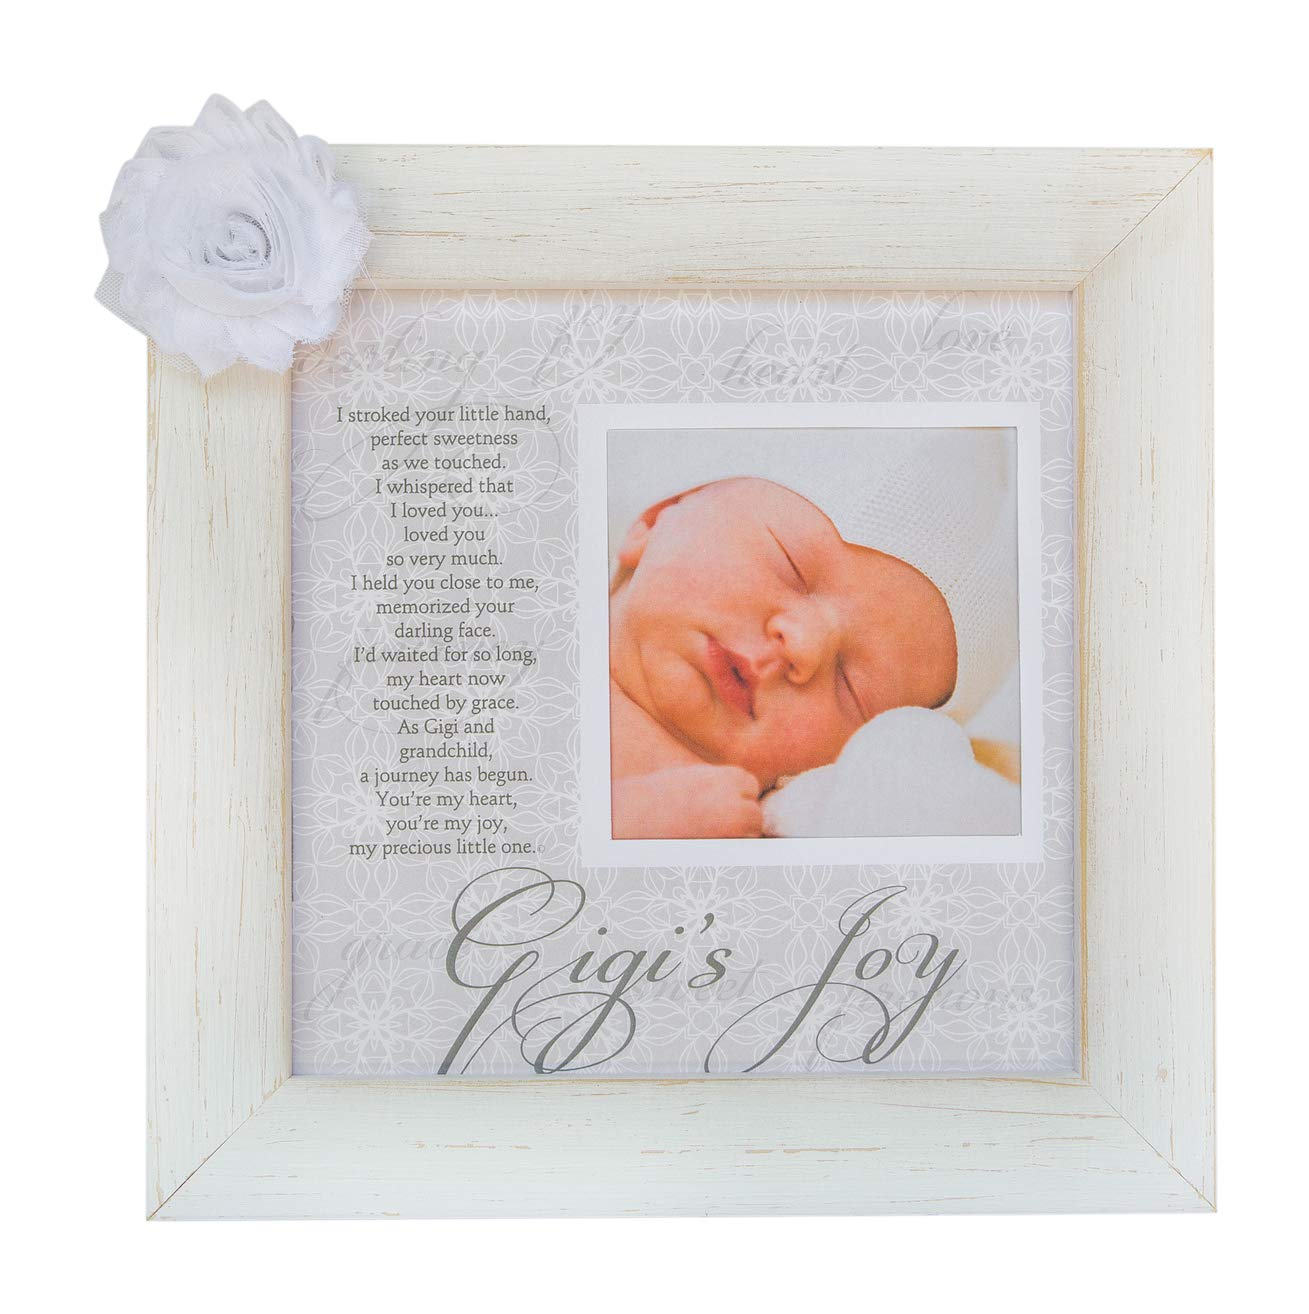 Gigi's Joy Picture Frame with Poetry Grandparent Gift Co.